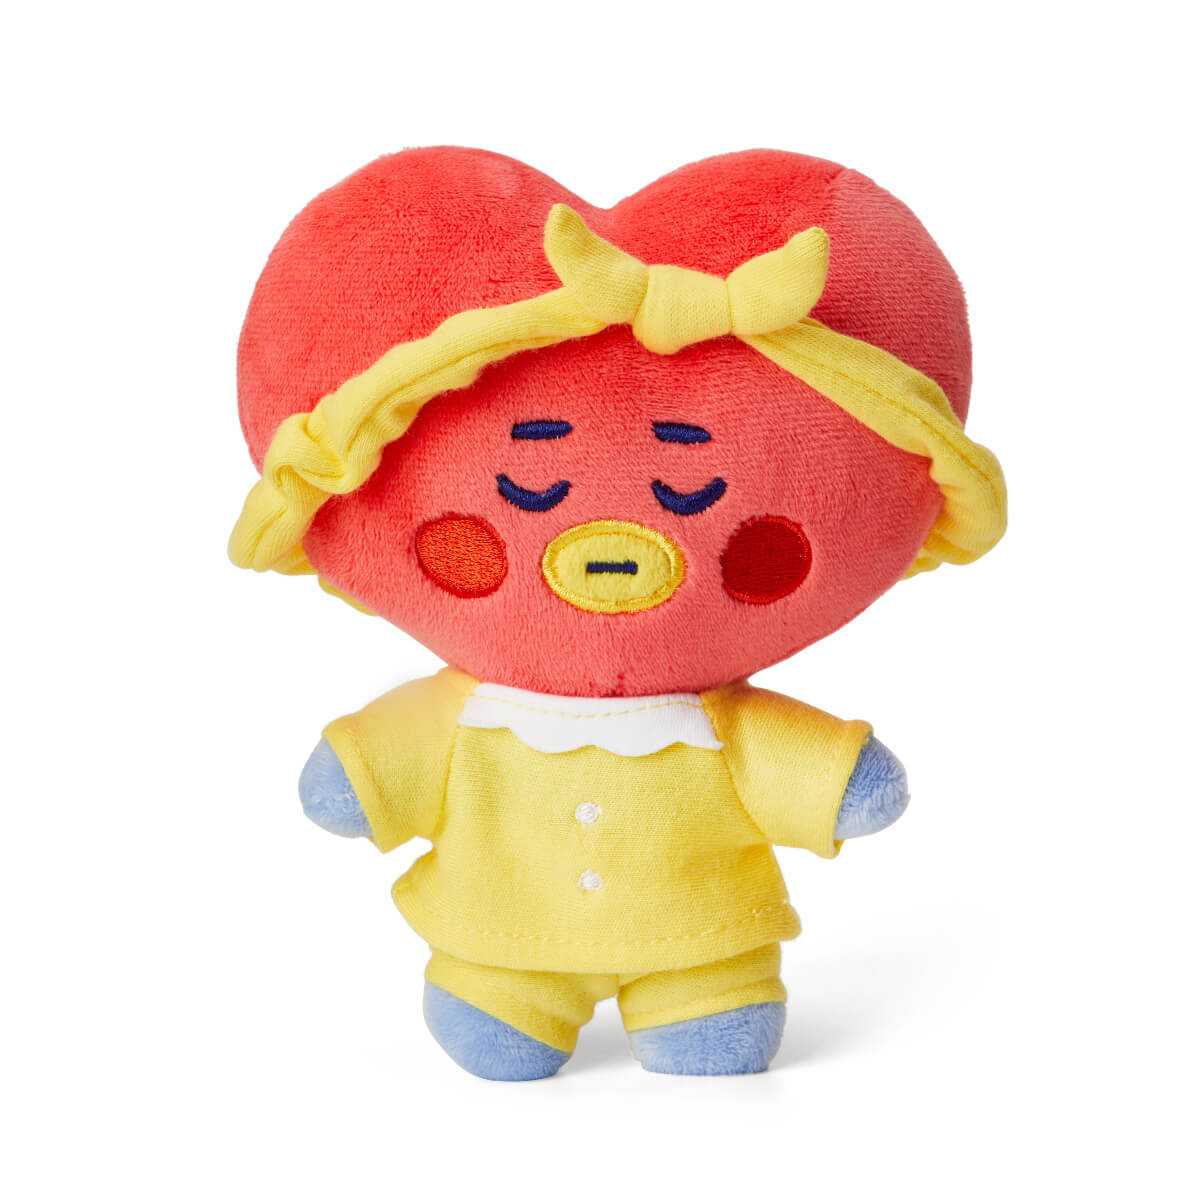 BT21 TATA Dream of Baby Pajama Doll Set